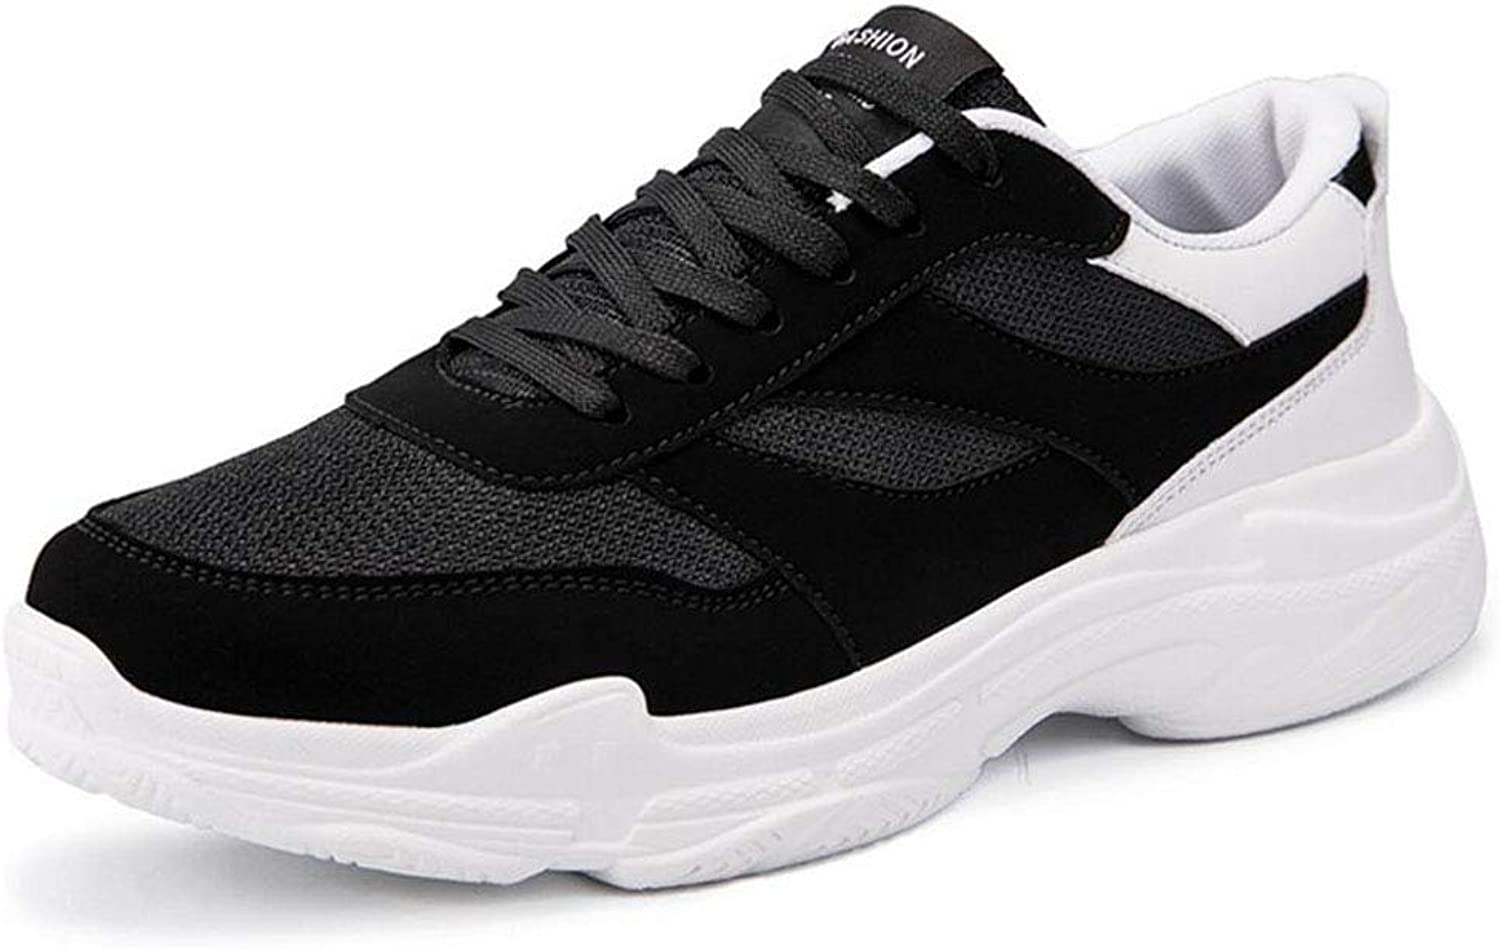 Xxoshoe Men's Lightweight Walking shoes Breathable Mesh Casual Sneakers Sports Gym Running